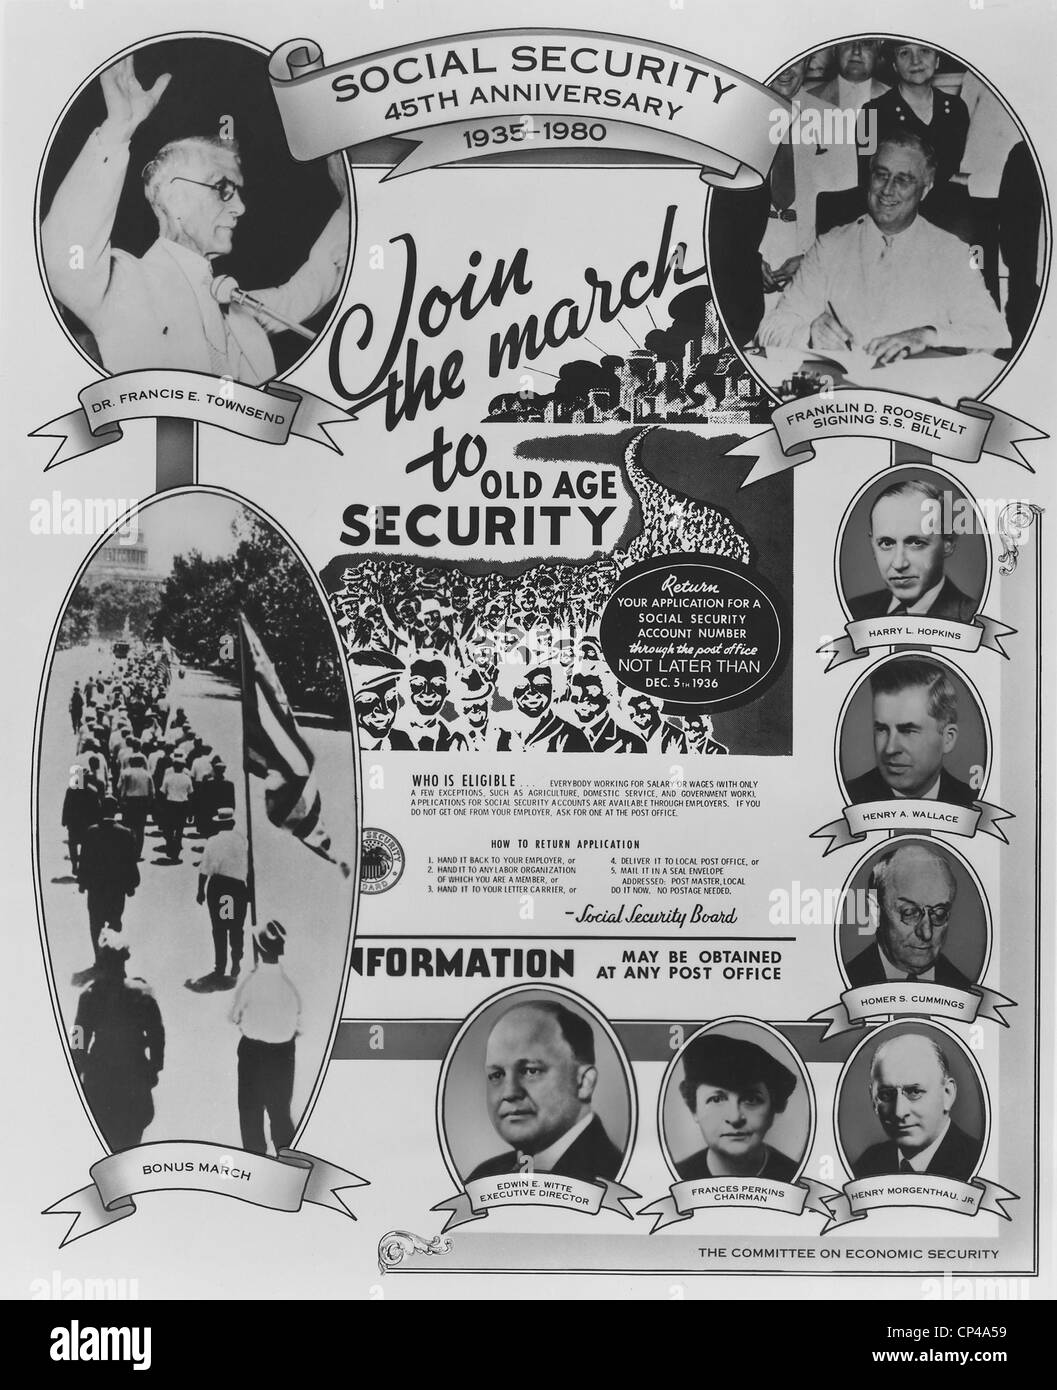 Social Security 45th Anniversary Poster. It features portraits of FDR and Francis Townsend and other New Deal politicians - Stock Image